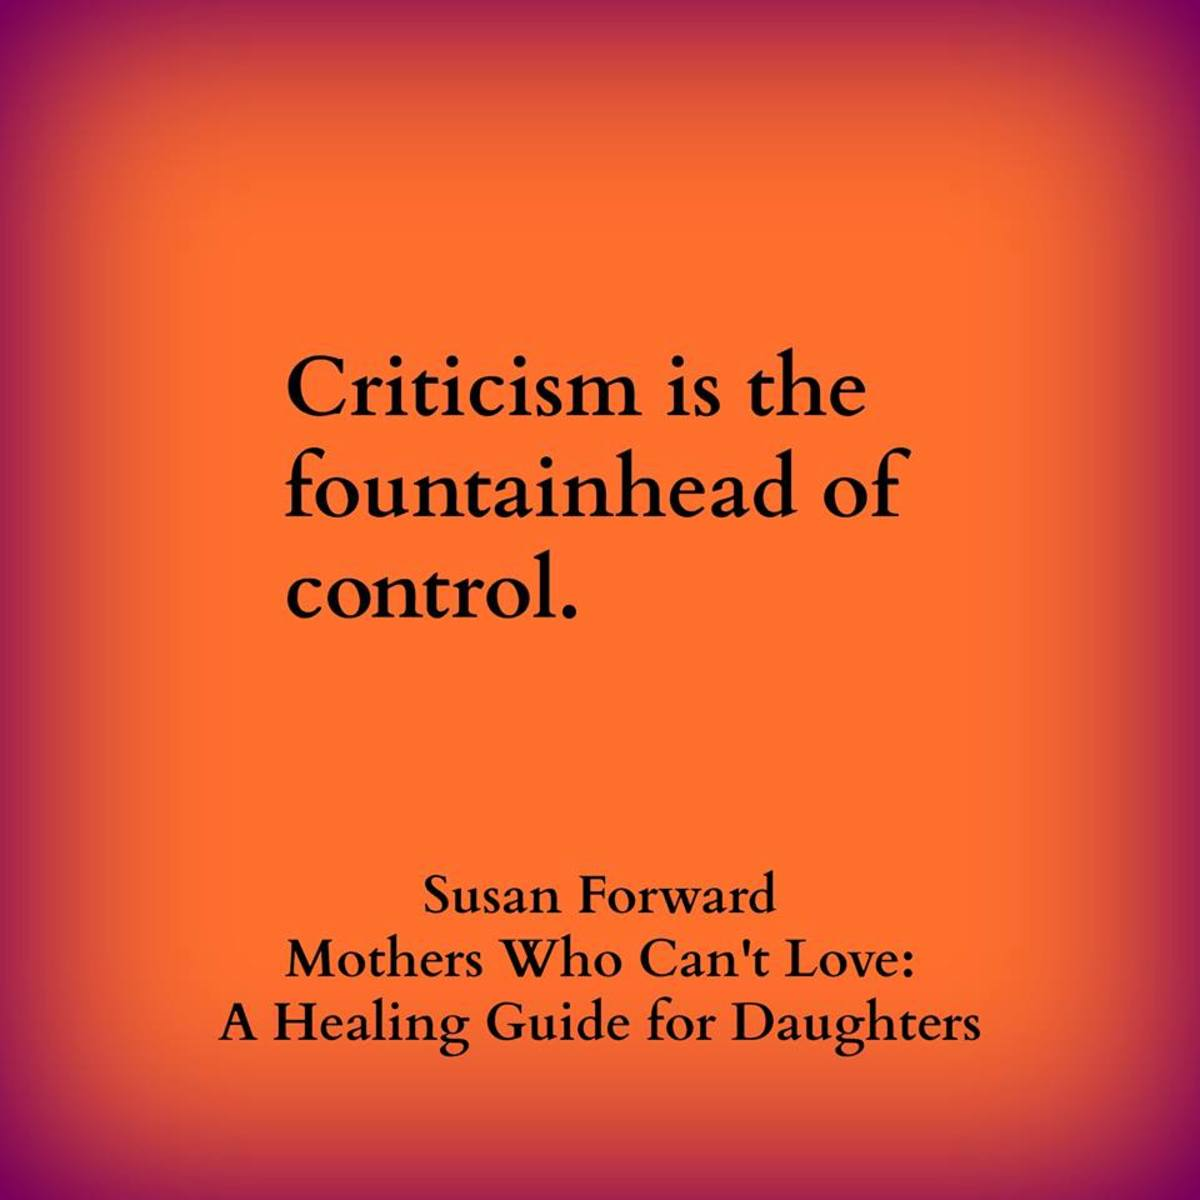 """""""Criticism is the fountainhead of control."""" - Dr. Susan Forward, Mothers Who Can't Love: A Healing Guide for Daughters"""